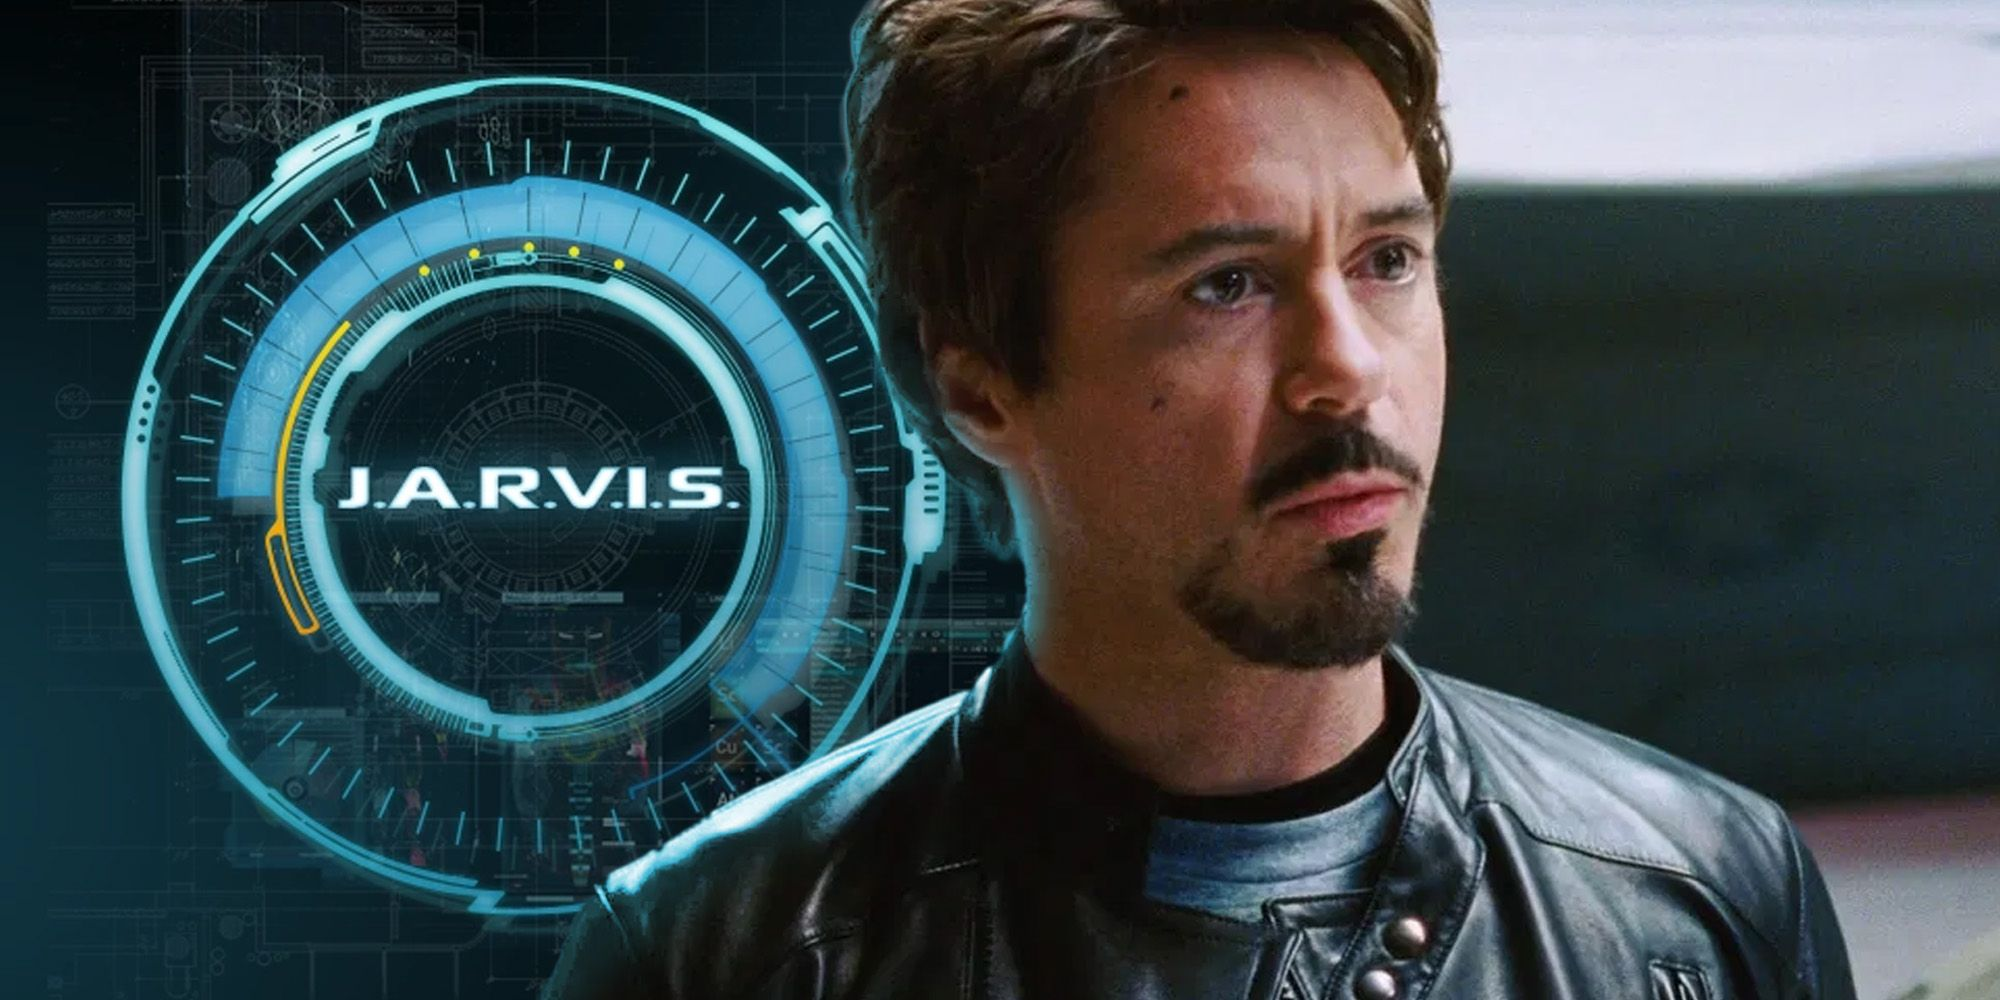 Stark and Jarvis